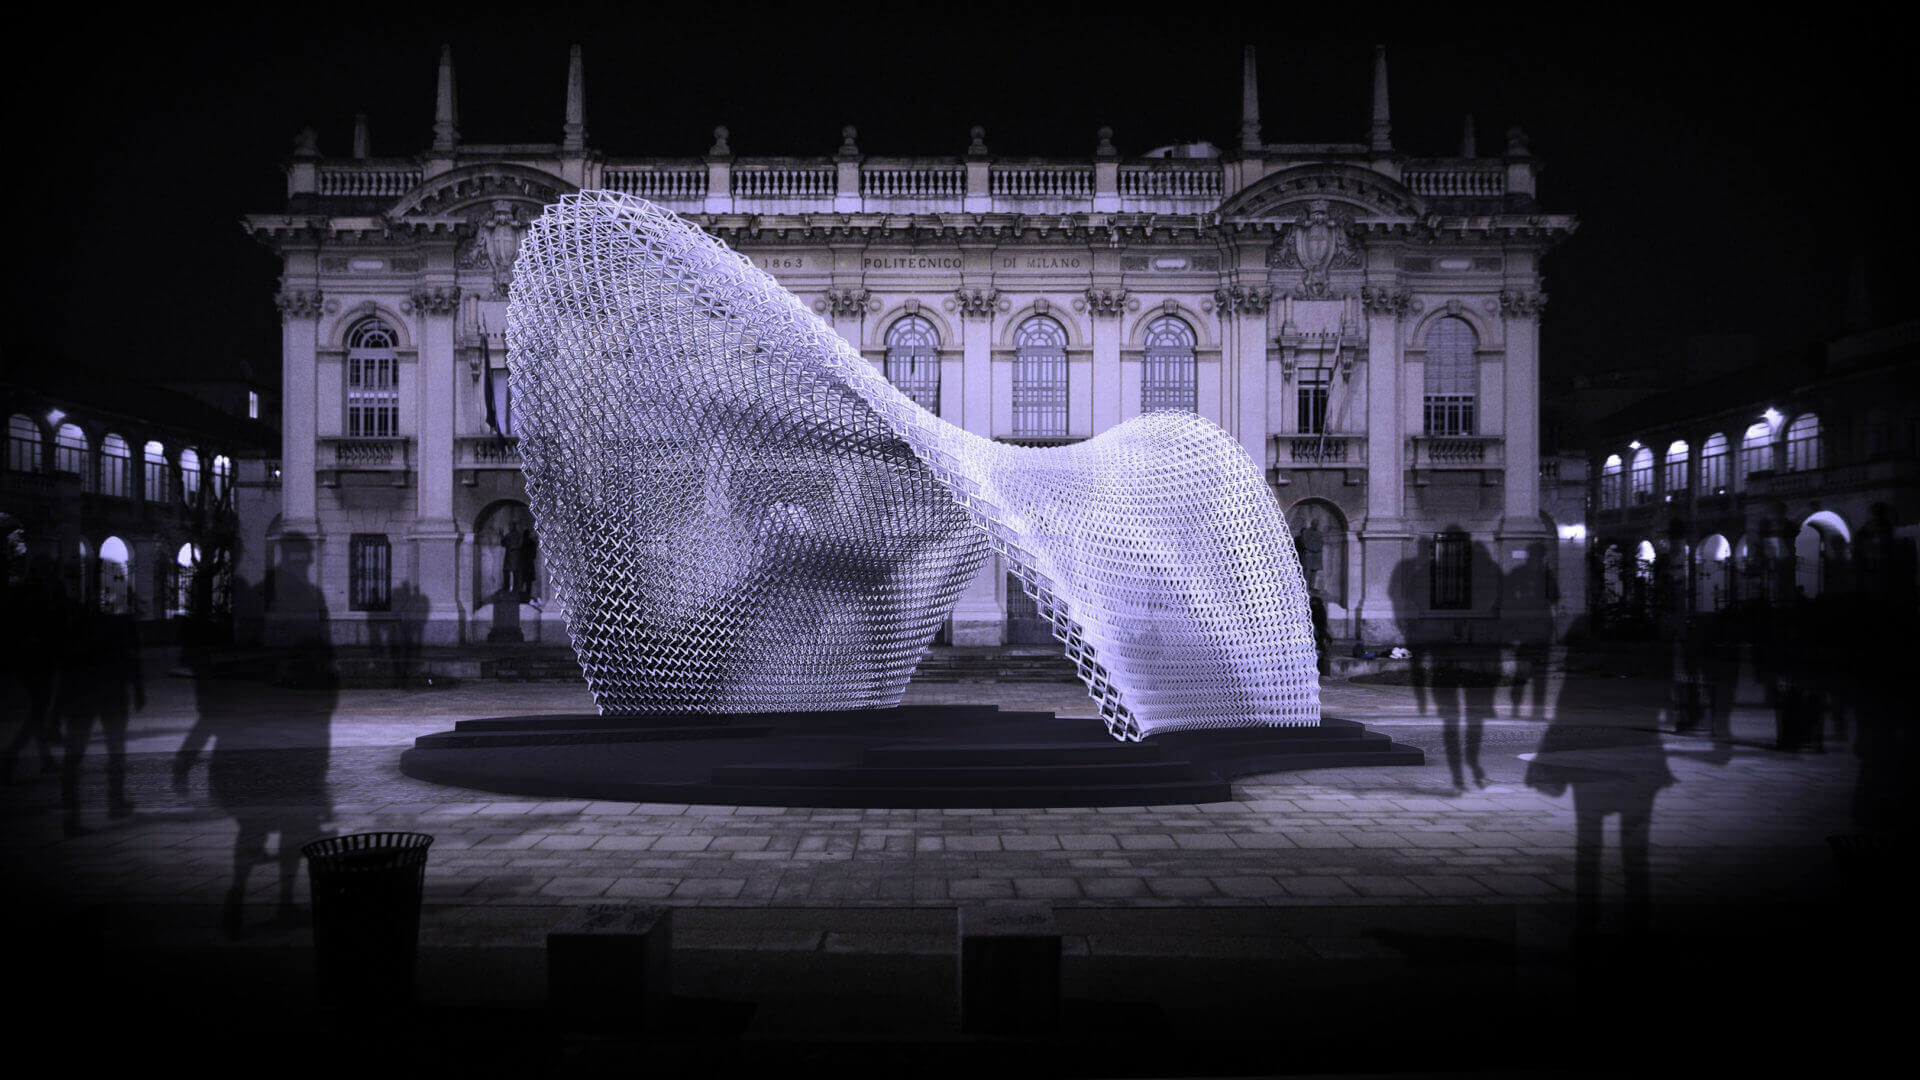 ACTLAB to Display Innovative Structure Printed With Wasp Delta 3D Printers | All3DP